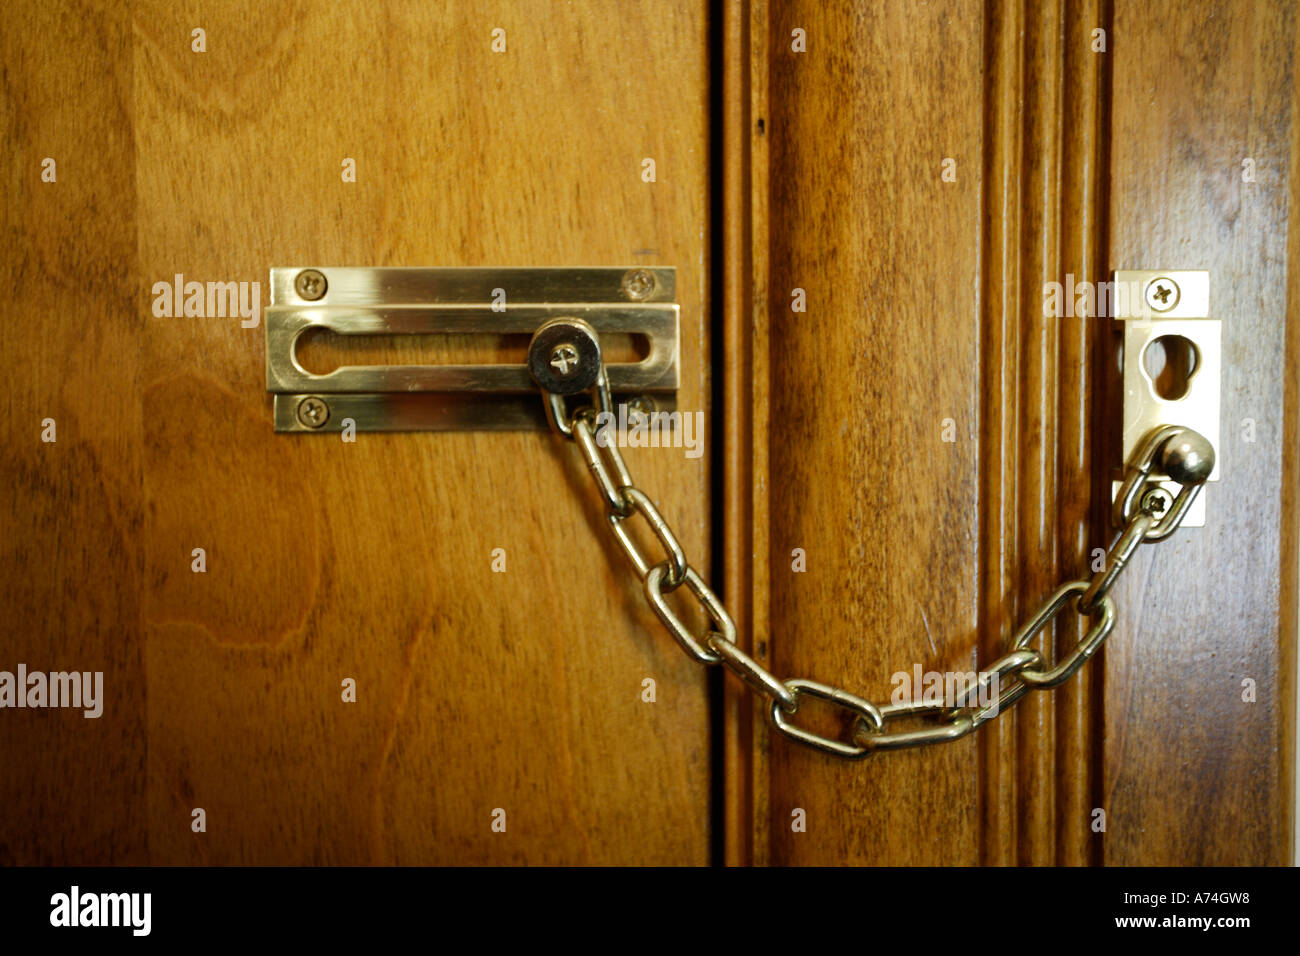 Locked Door With Chain Lock Stock Photo 6698135 Alamy